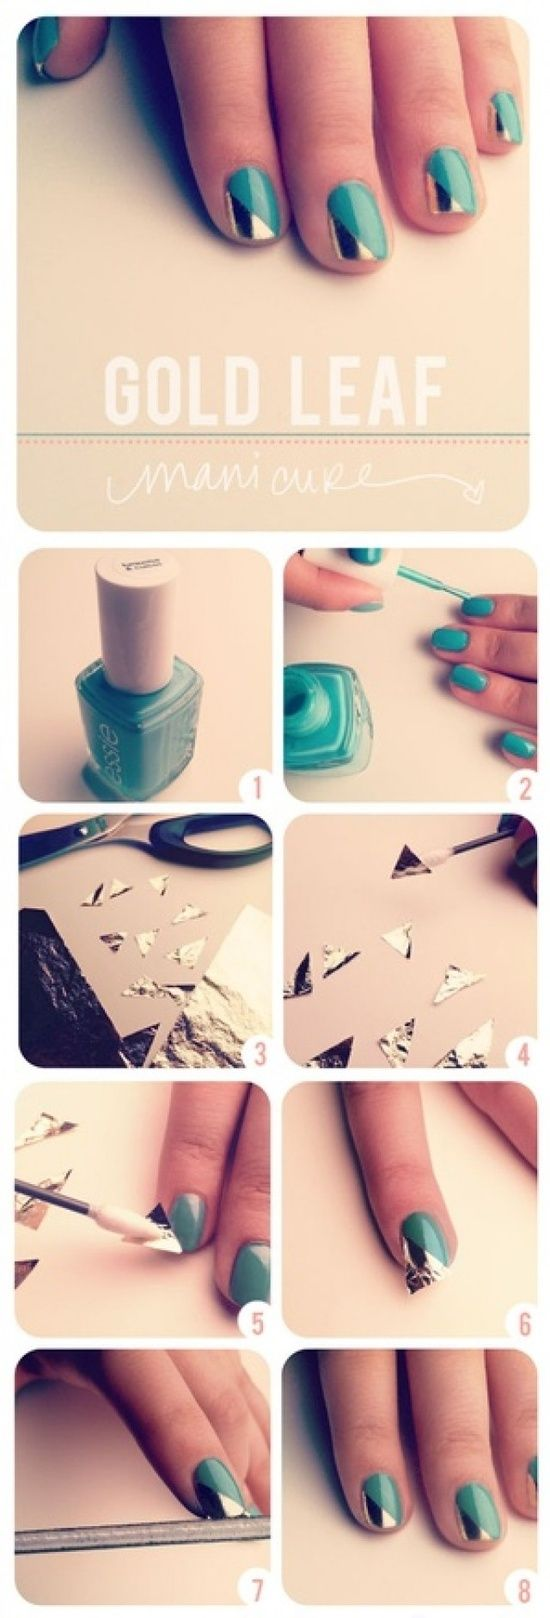 17 easy and cool step by step nail art tutorials decoracin de 17 easy and cool step by step nail art tutorials solutioingenieria Image collections